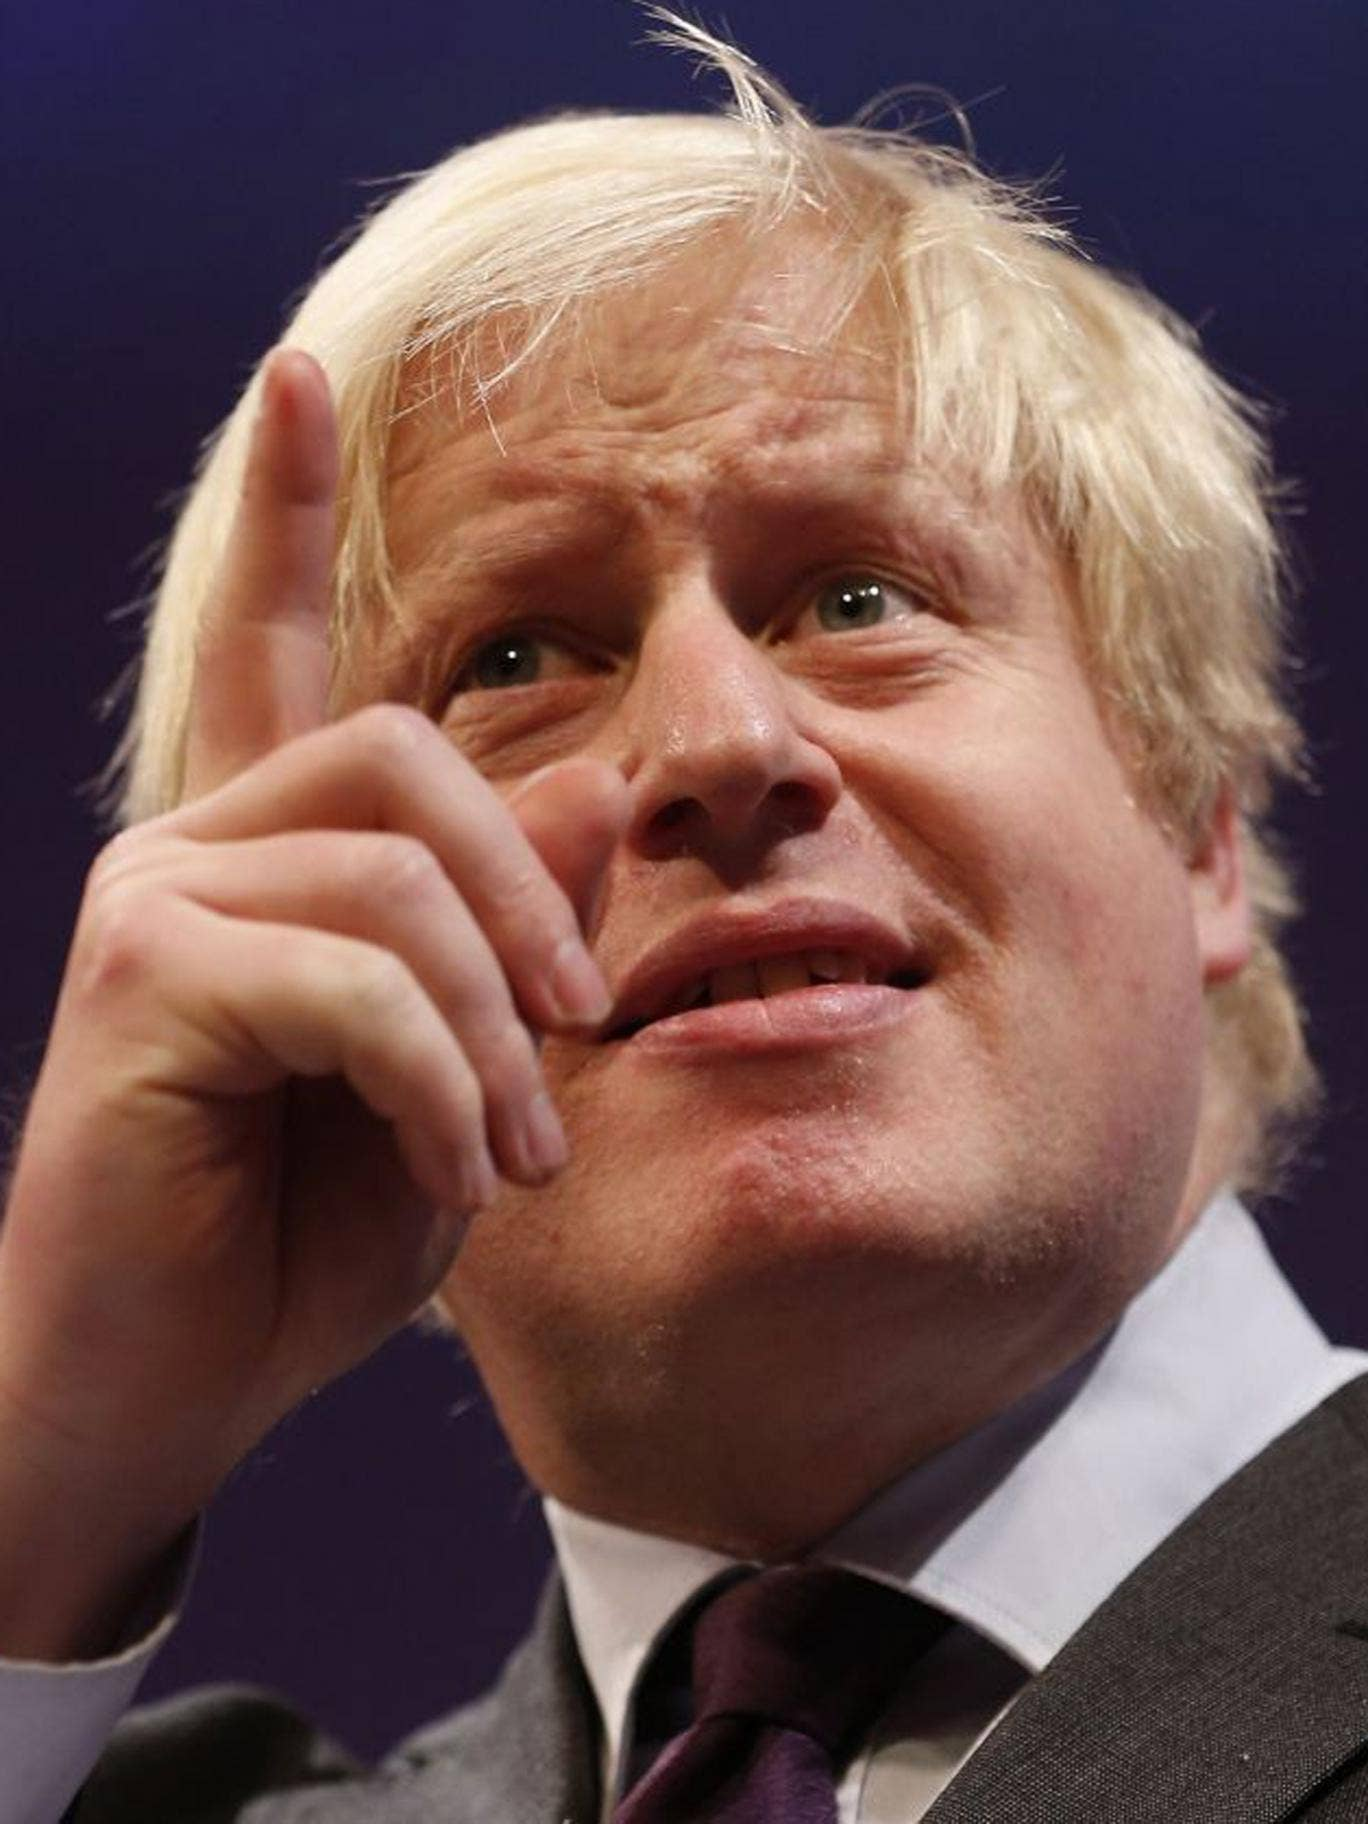 Guests at The Spectator's annual political awards were told the Mayor of London, a former editor of the magazine, scooped the top accolade for breaking the Conservatives' electoral curse